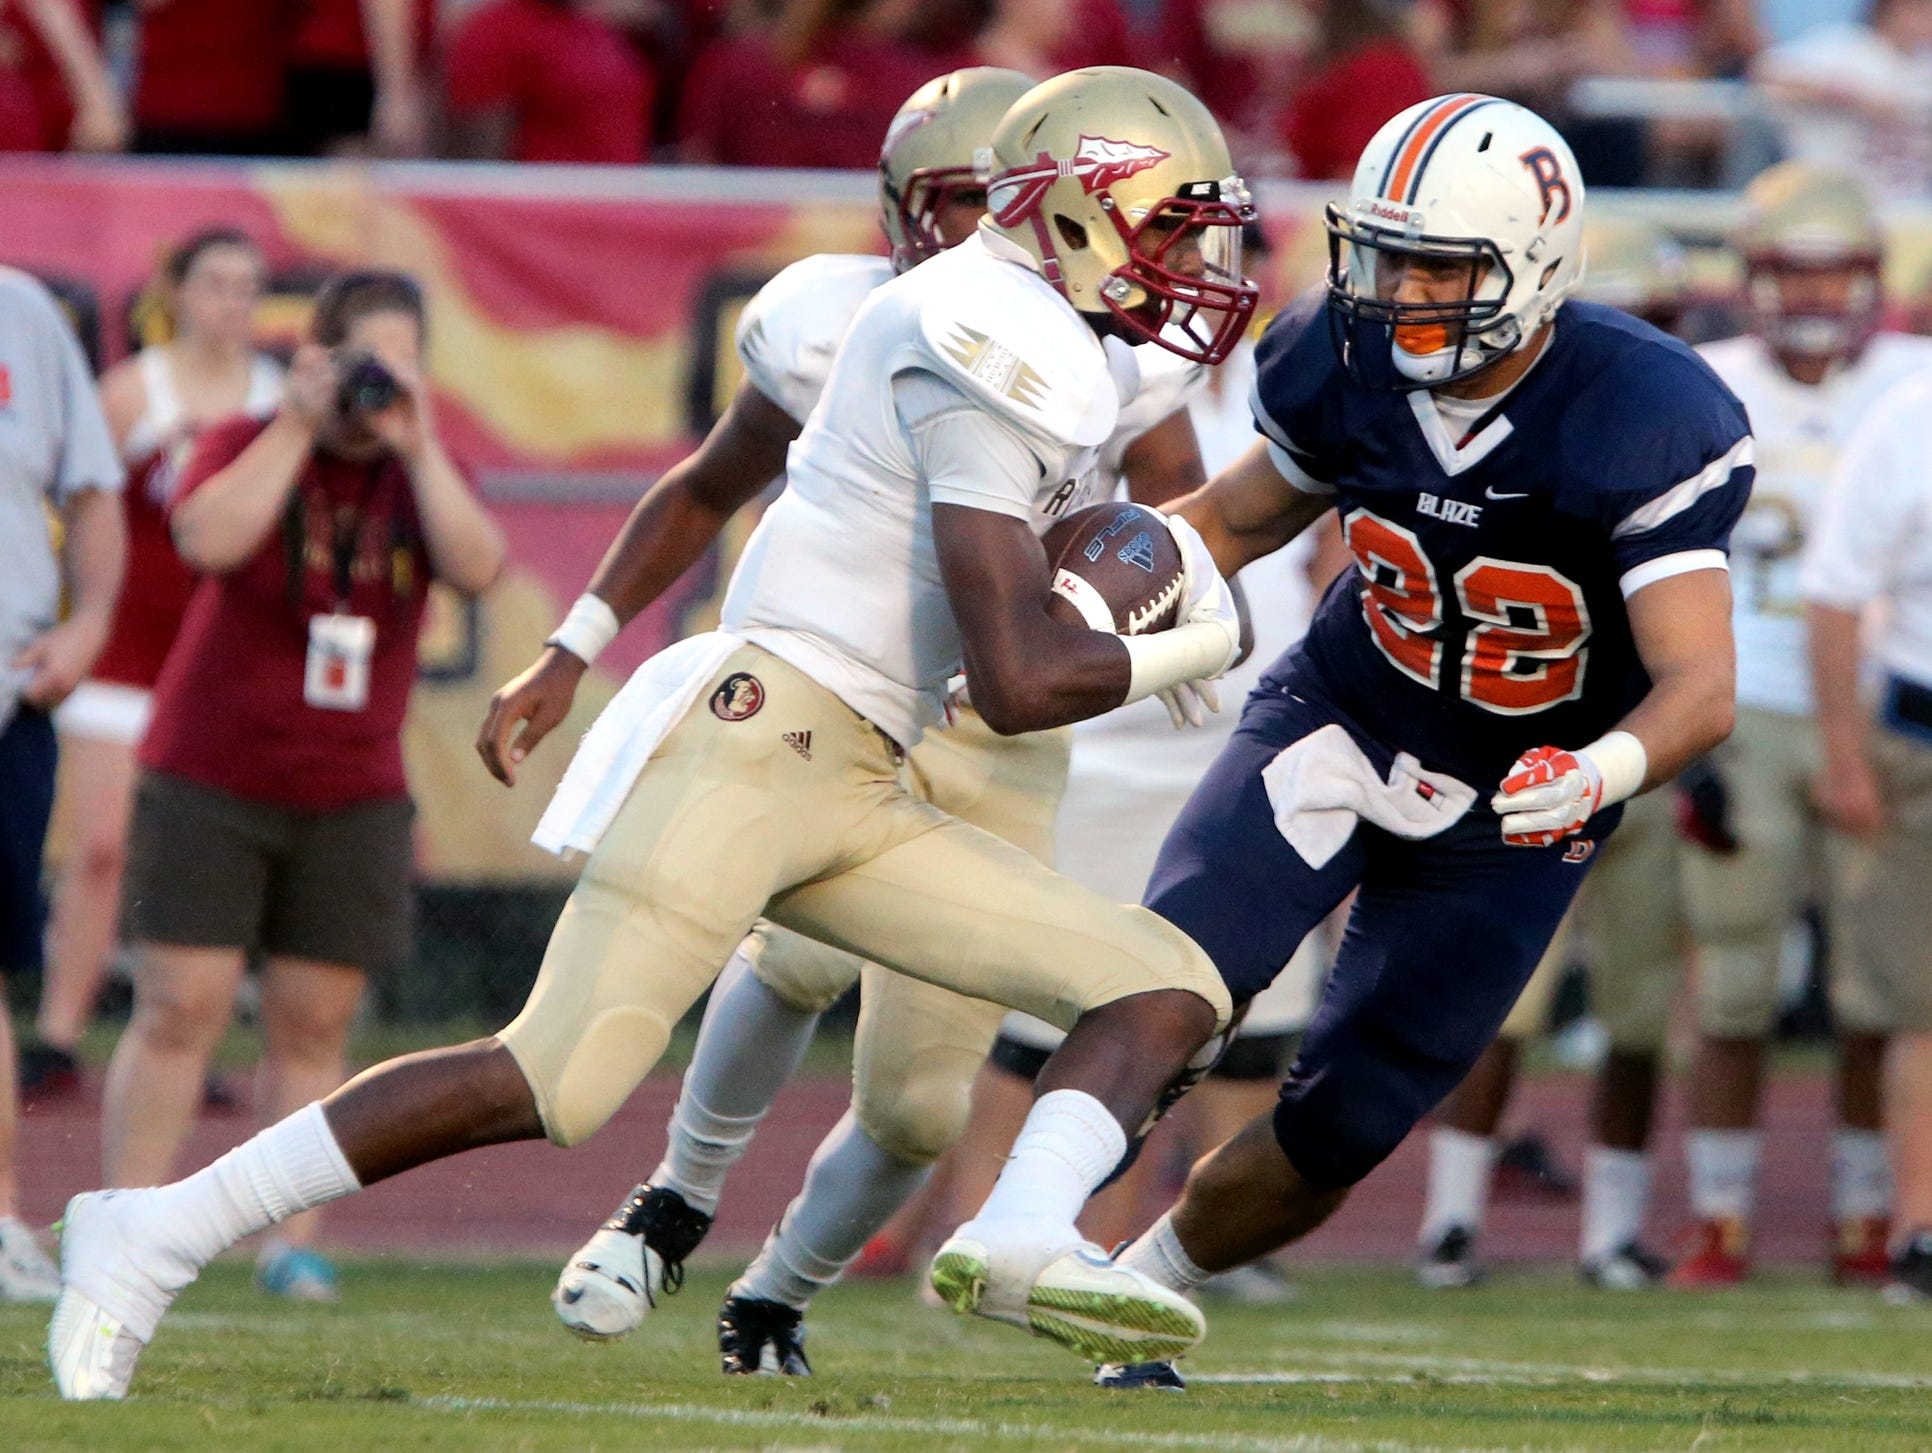 Riverdale's Marquise Cantrell (4) runs the ball as Blackman's Tony Ochoa (22) moves in for the tackle, at Blackman, on Friday Sept. 4, 2015.